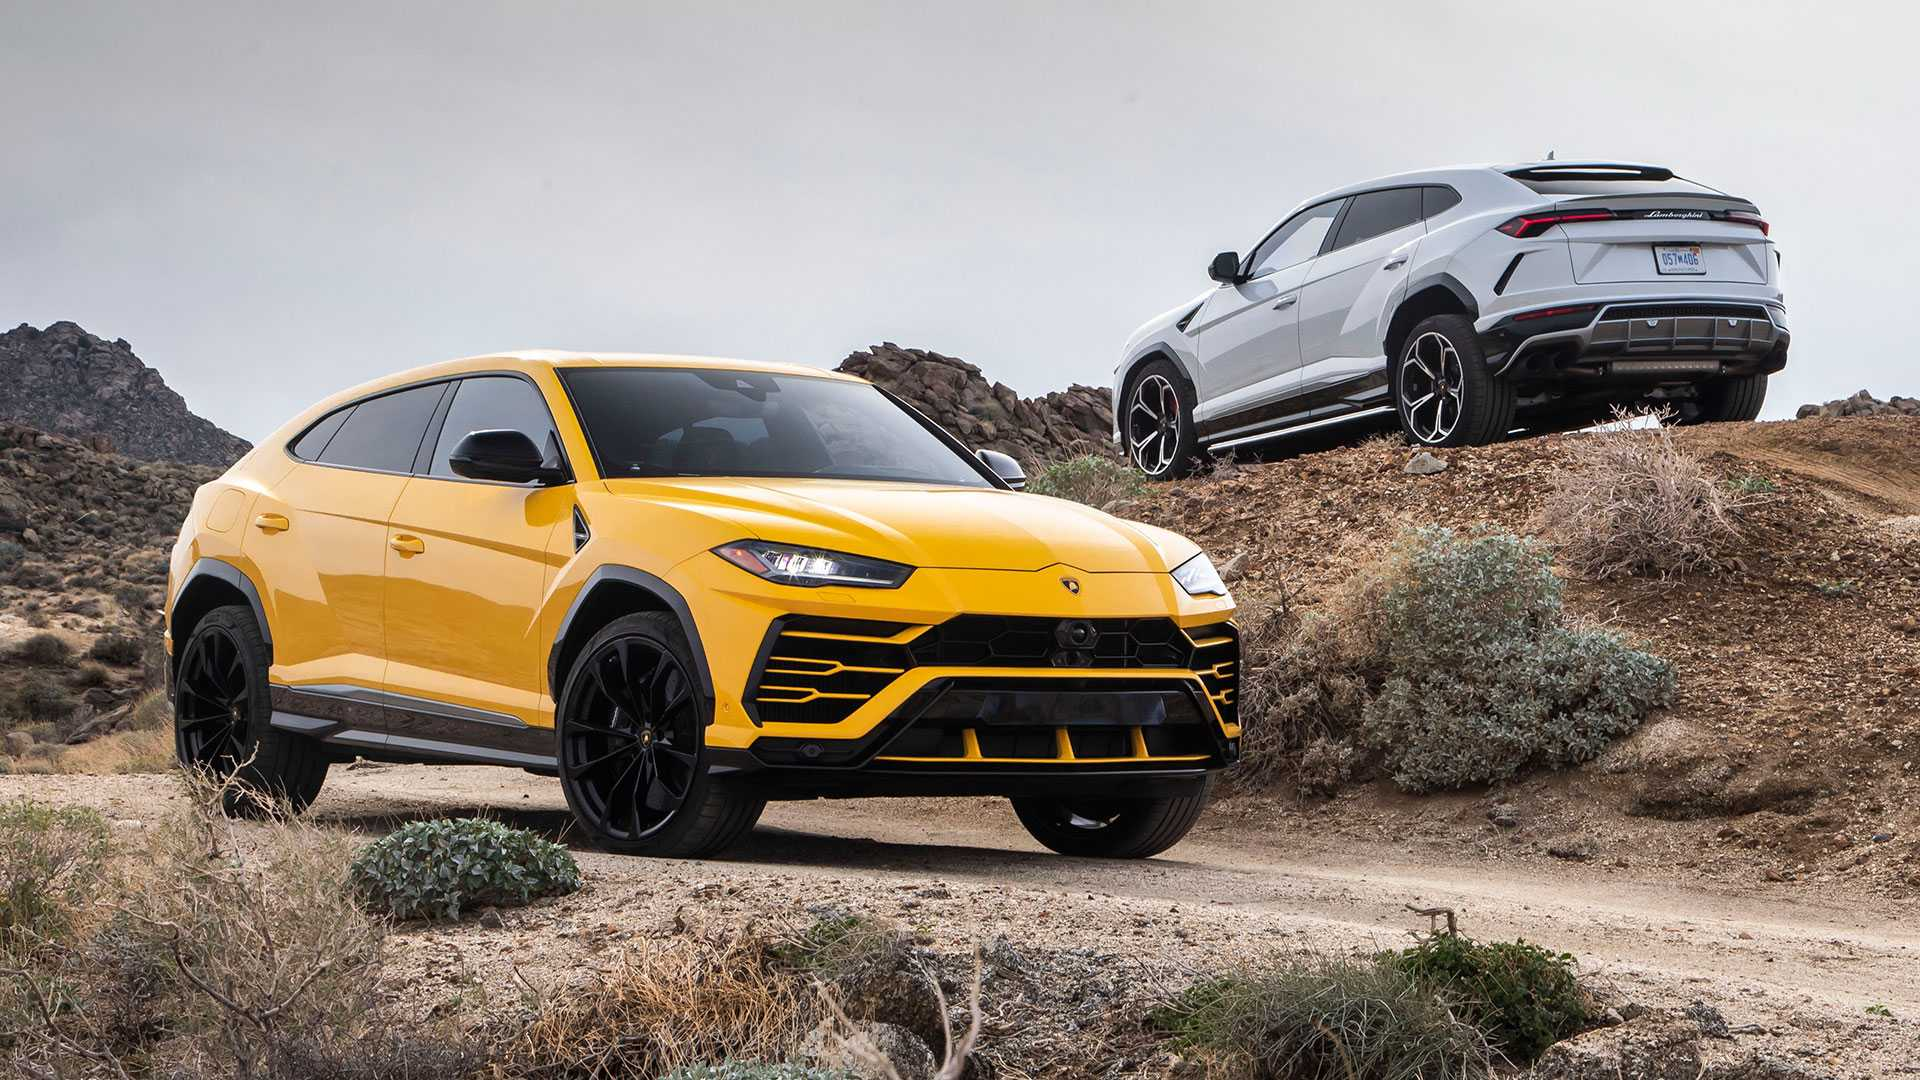 69 All New 2019 Lamborghini Urus Review And Release Date